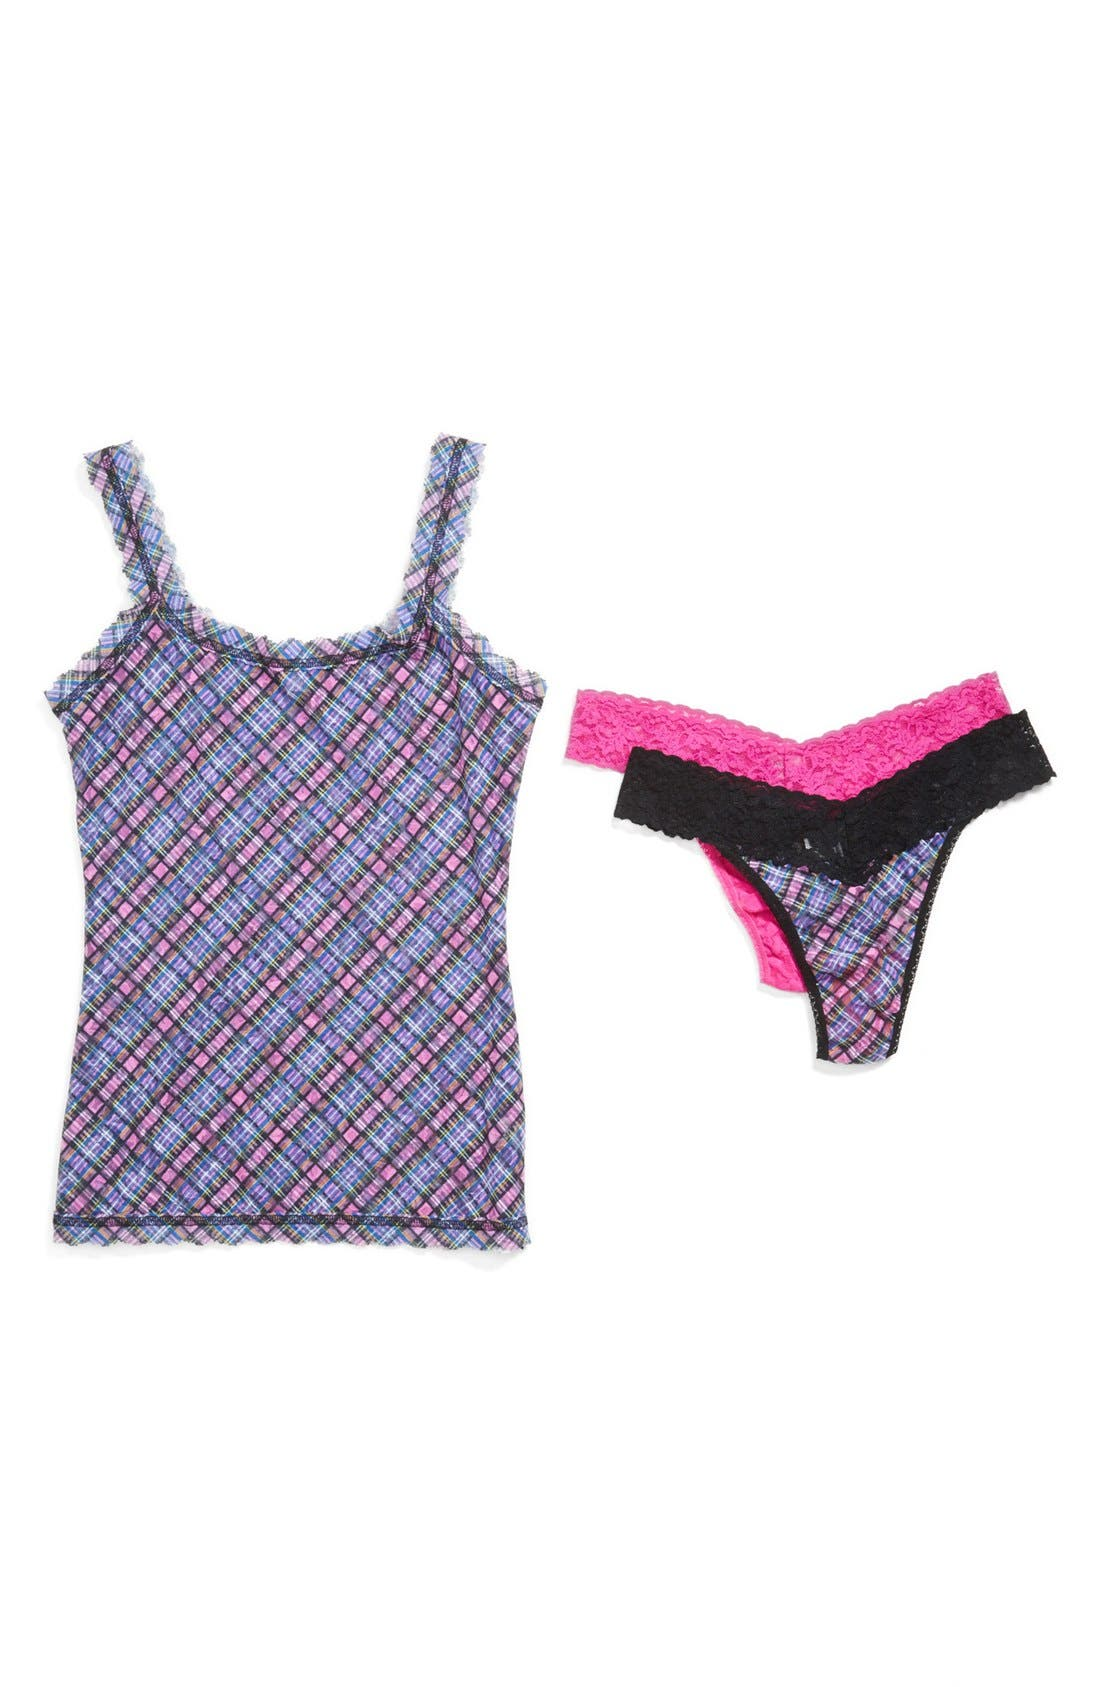 Alternate Image 1 Selected - Hanky Panky Camisole & Original Rise Thong Set (Nordstrom Exclusive) ($102 Value)